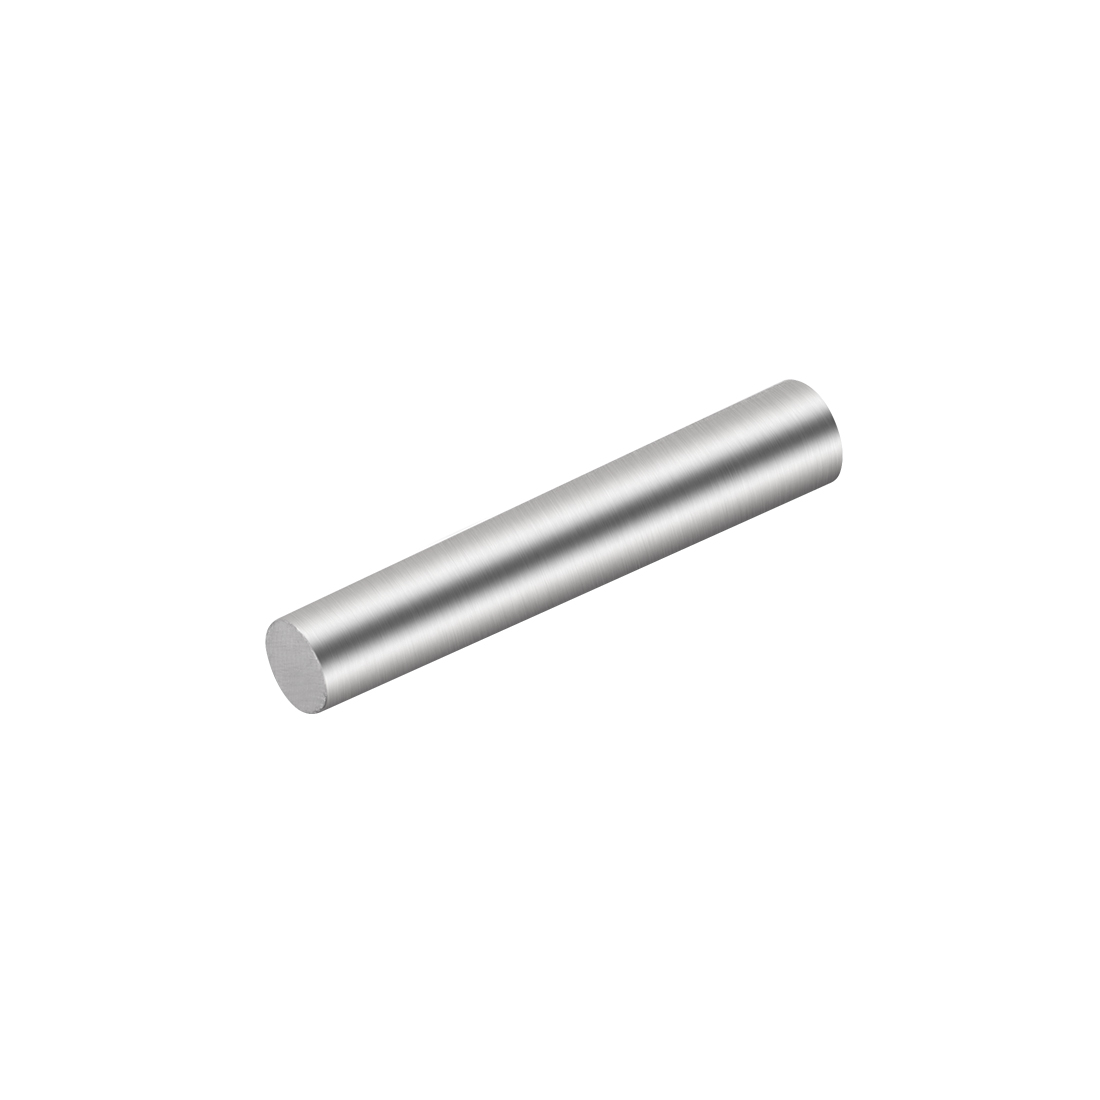 4mm x 25mm 1:50 Taper Pin 304 Stainless Steel Shelf Support Pin Fasten Elements